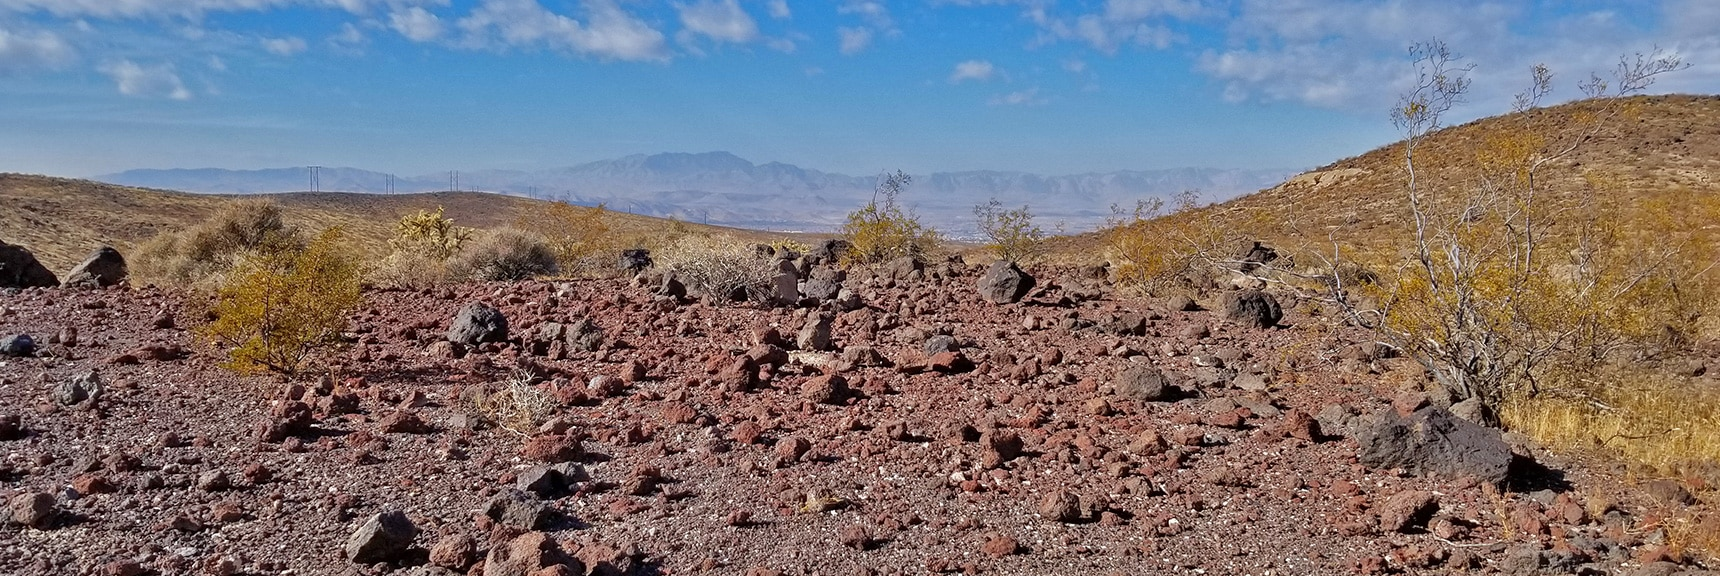 Lots of Volcanic Rock in the Hills. Las Vegas Valley and Rainbow Mountains Backdrop   McCullough Hills Trail in Sloan Canyon National Conservation Area, Nevada